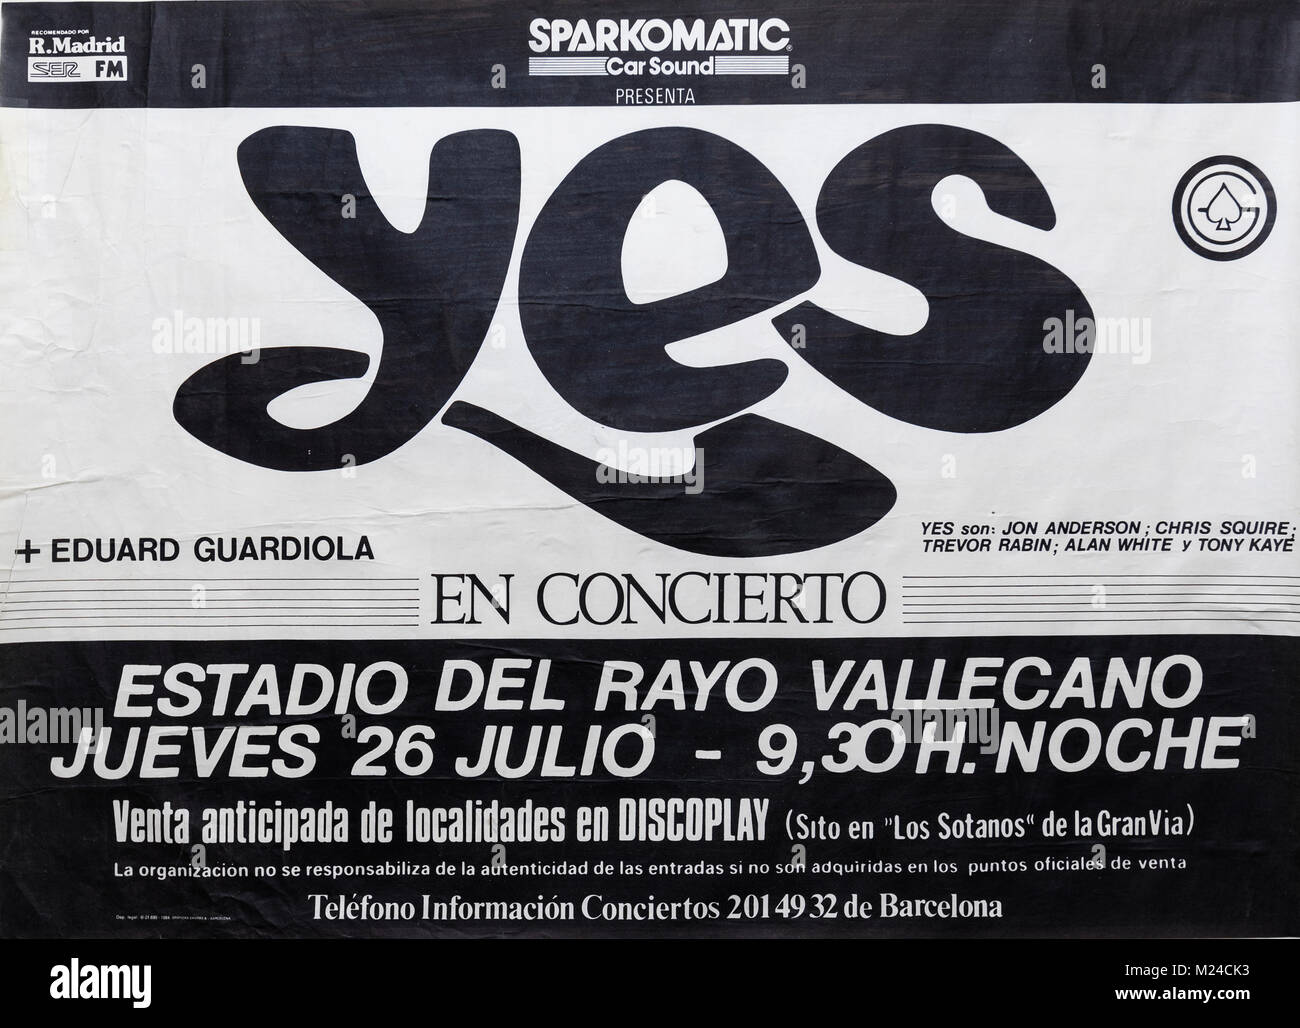 Yes group with Jon Anderson plus Eduard Guardiola in concert, Madrid 1984. Musical concert poster - Stock Image